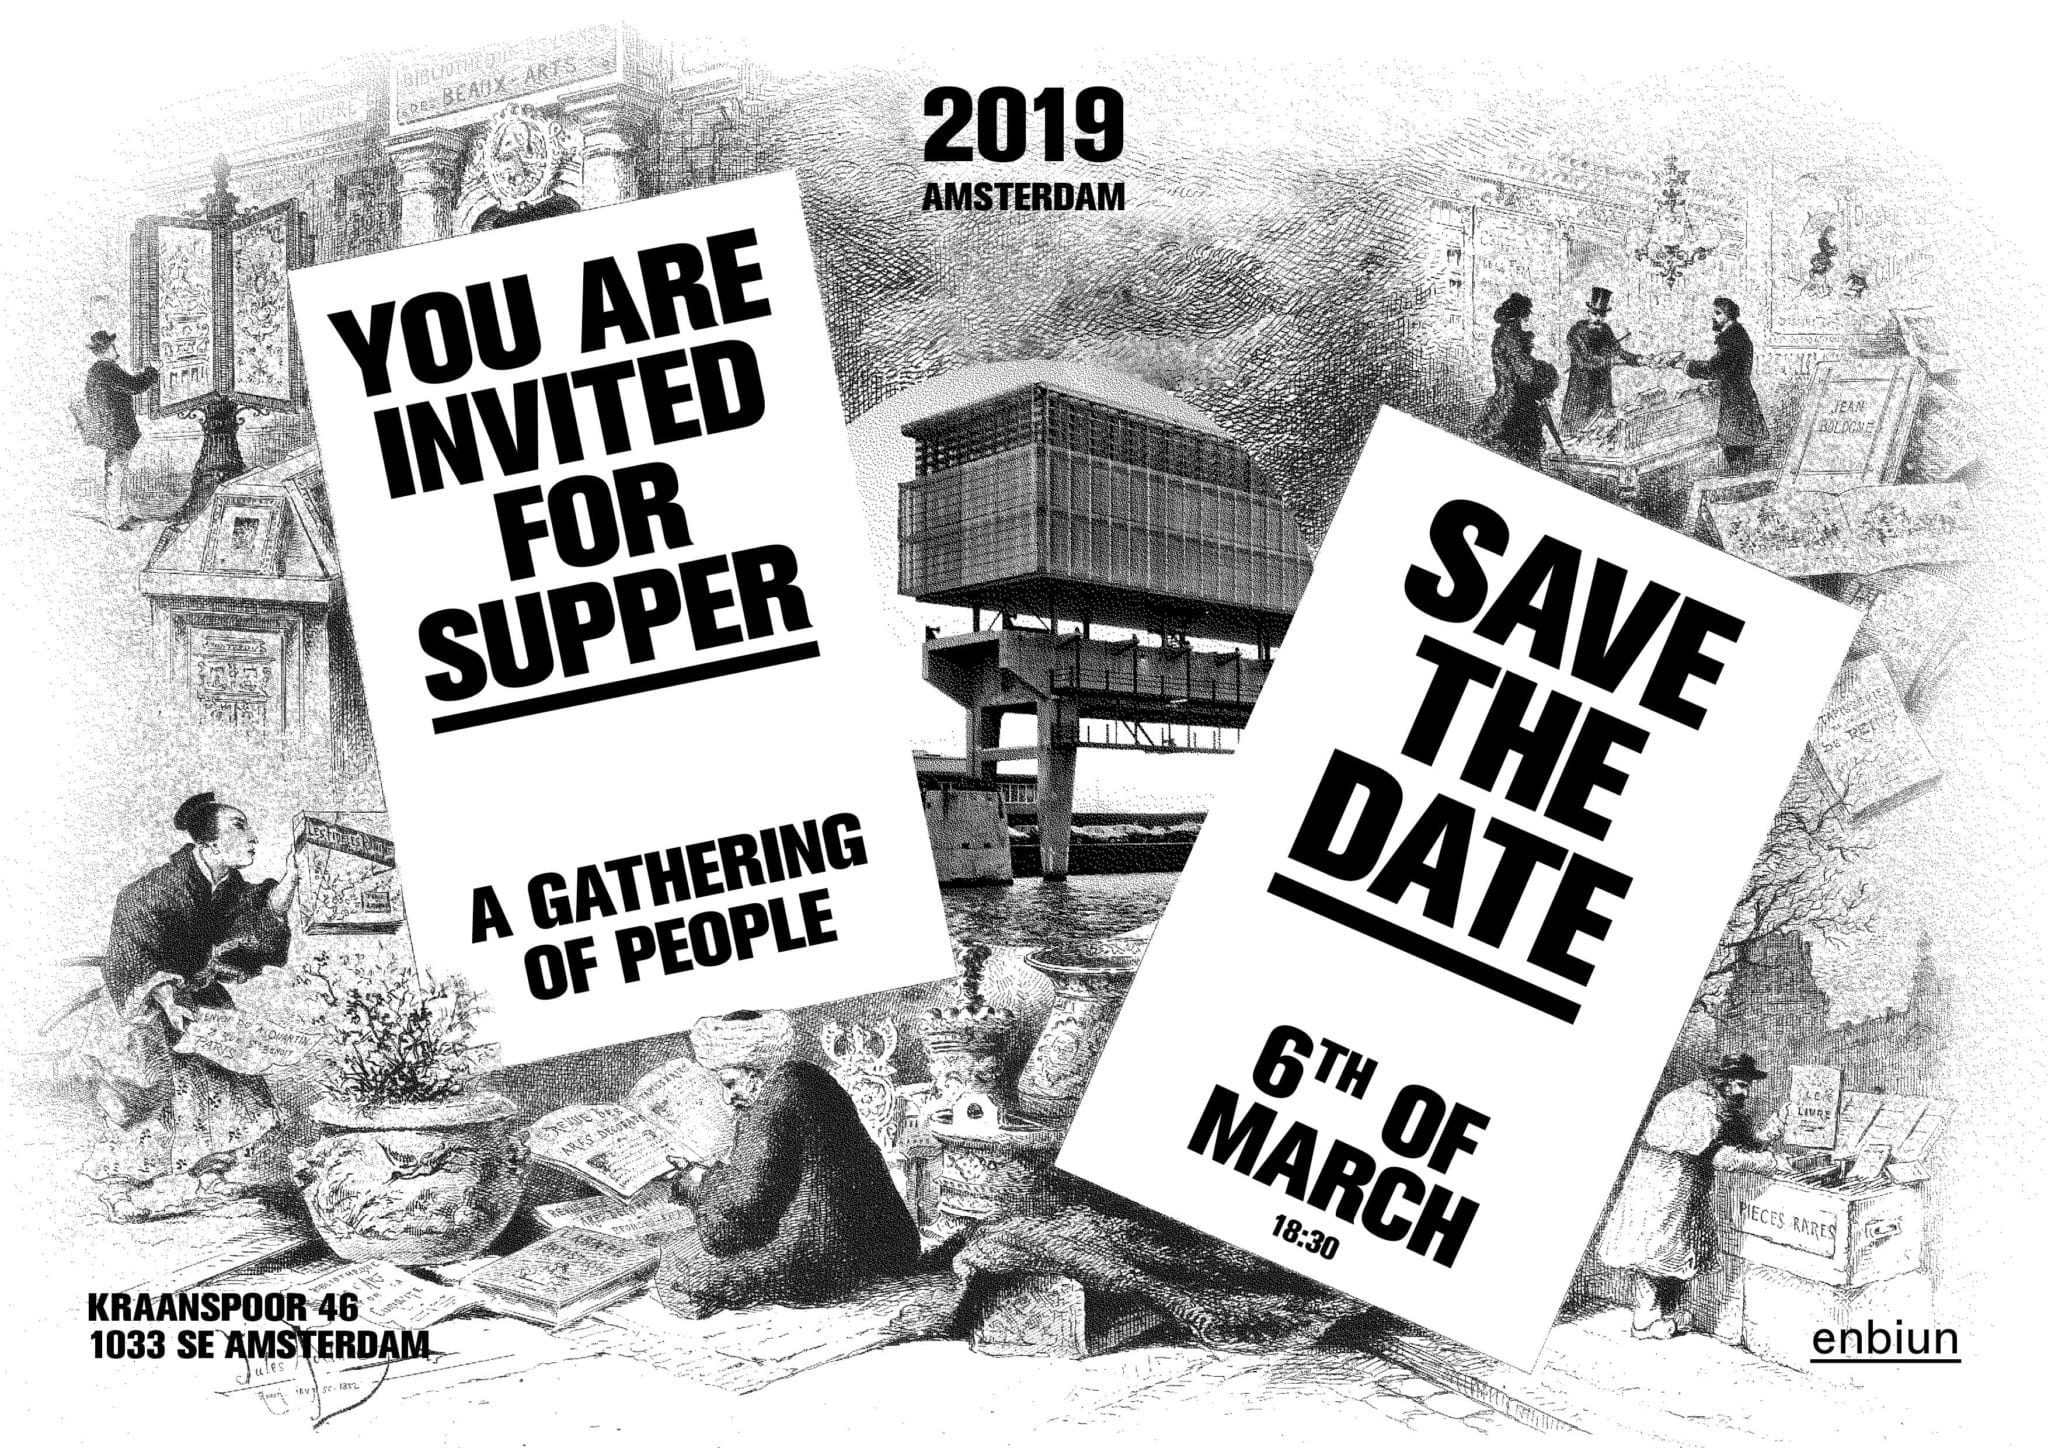 The Enbiun supper invitation for may 2019